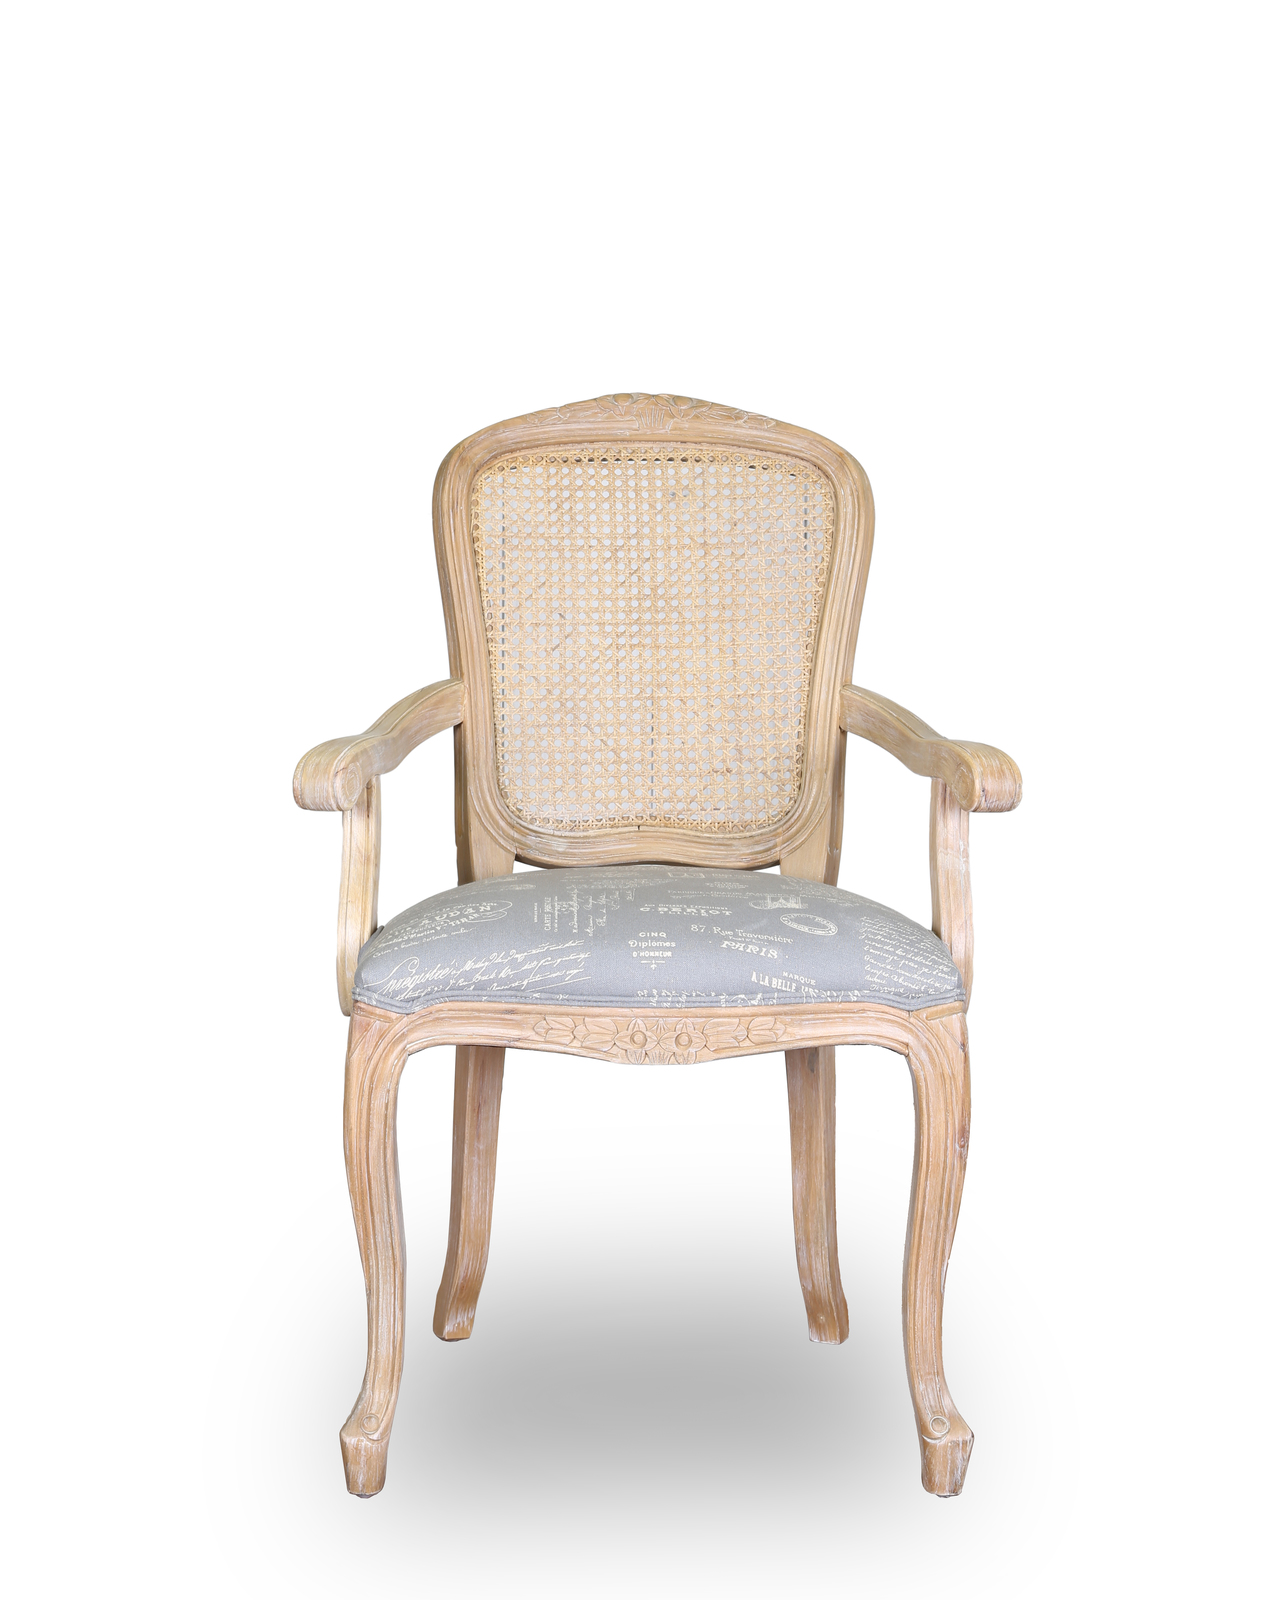 dining room furniture brisbane | Traditional Washed Oak Timber Carver Dining Chairs ...